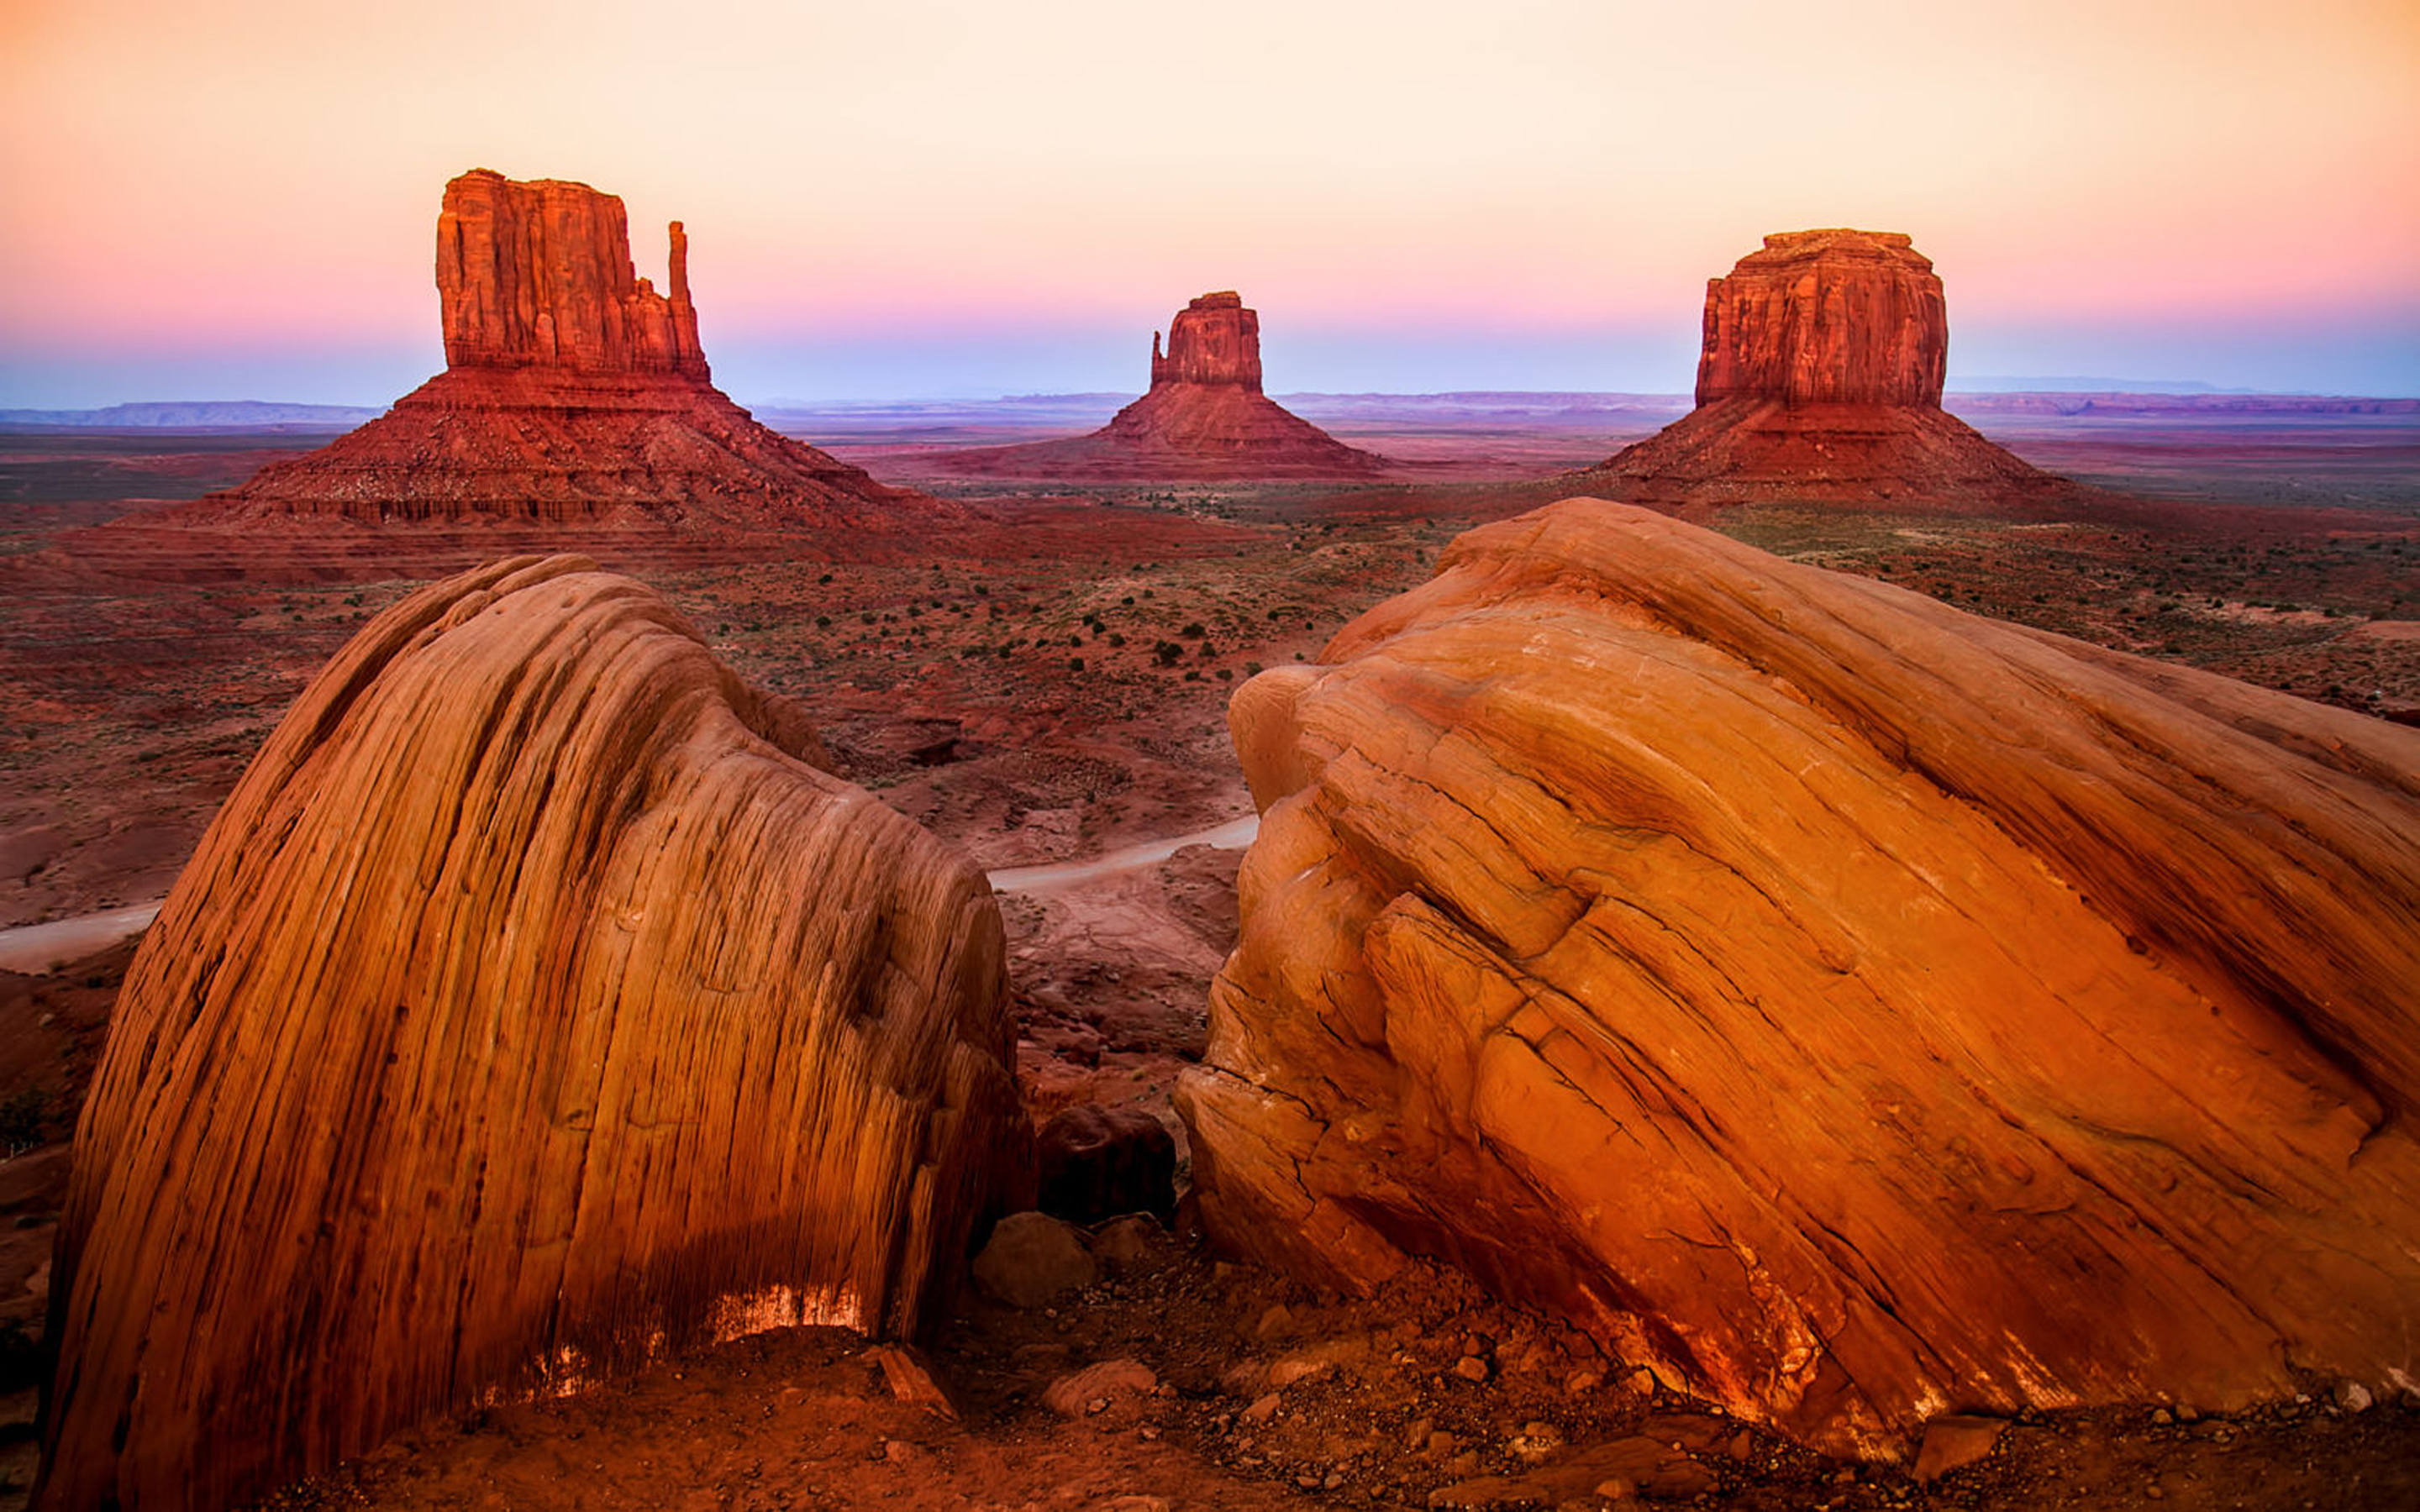 Fall Flowers Wallpaper Desktop Monument Valley National Park Figures Of Rock Vaarsko Of